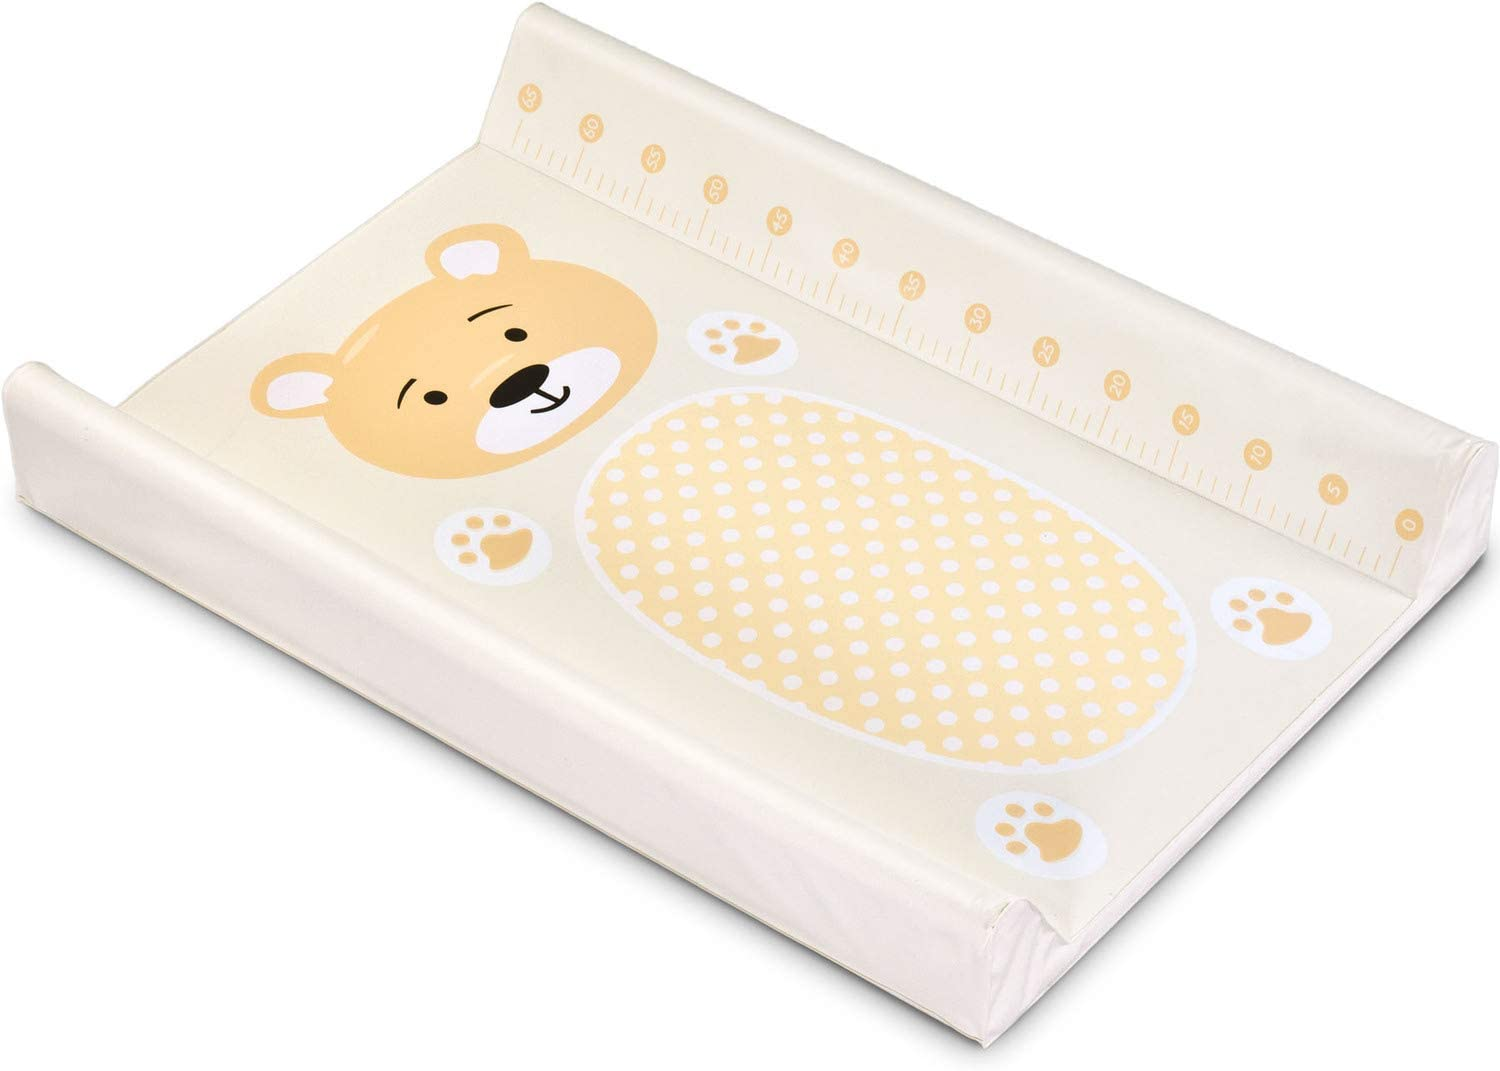 Changing mat Pad for Baby Washable Travel mat for Changing Table 50x70cm 70 x 50 cm, White Dog Portable Nappy mat for Newborn and Toddlers Waterproof Home and Outdoor